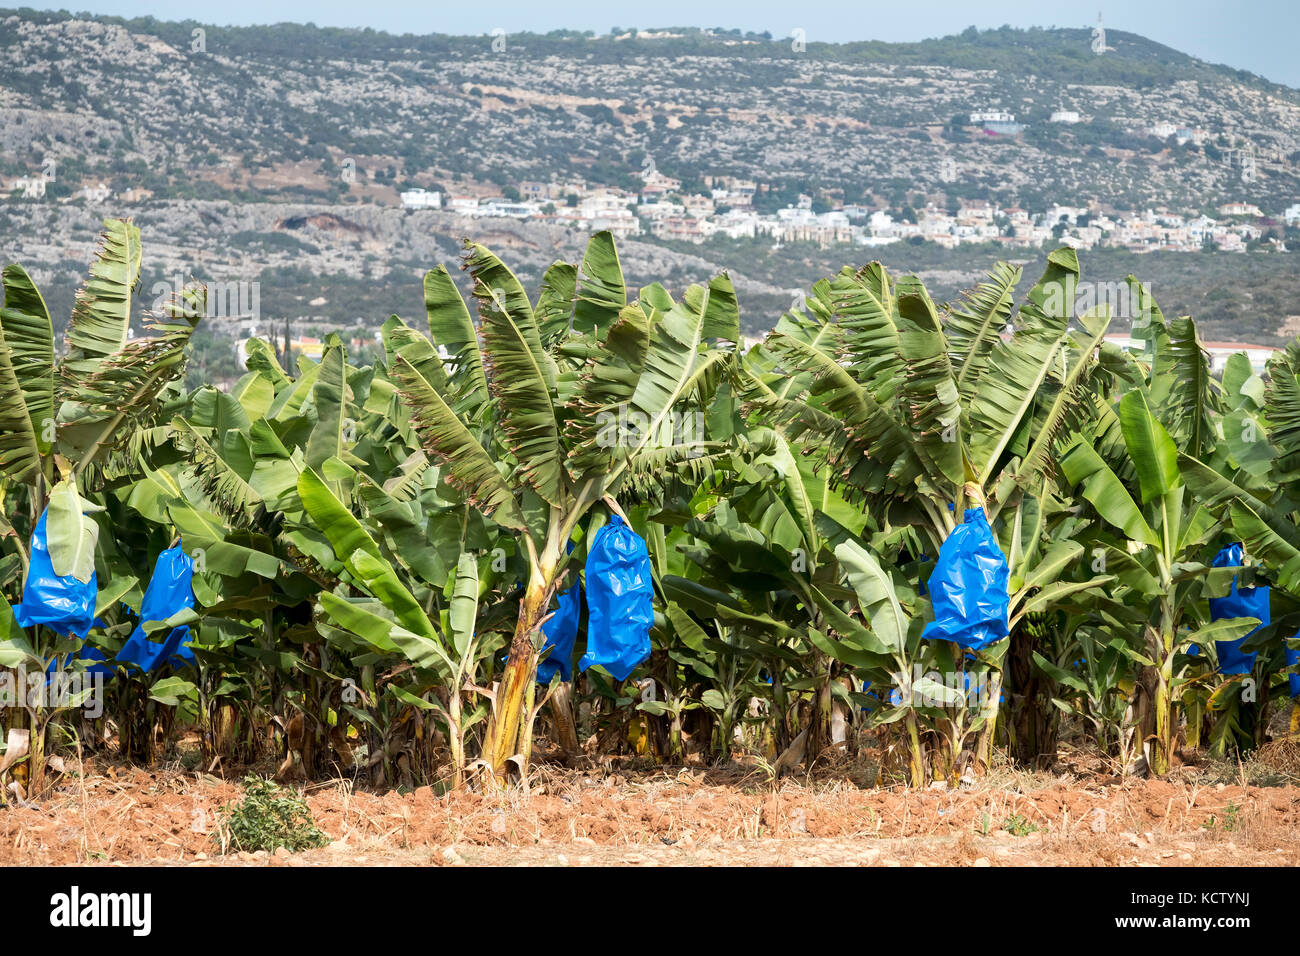 banana plantation near Paphos in the Republic of Cyprus showing bananas covered by blue plastic for protection and - Stock Image